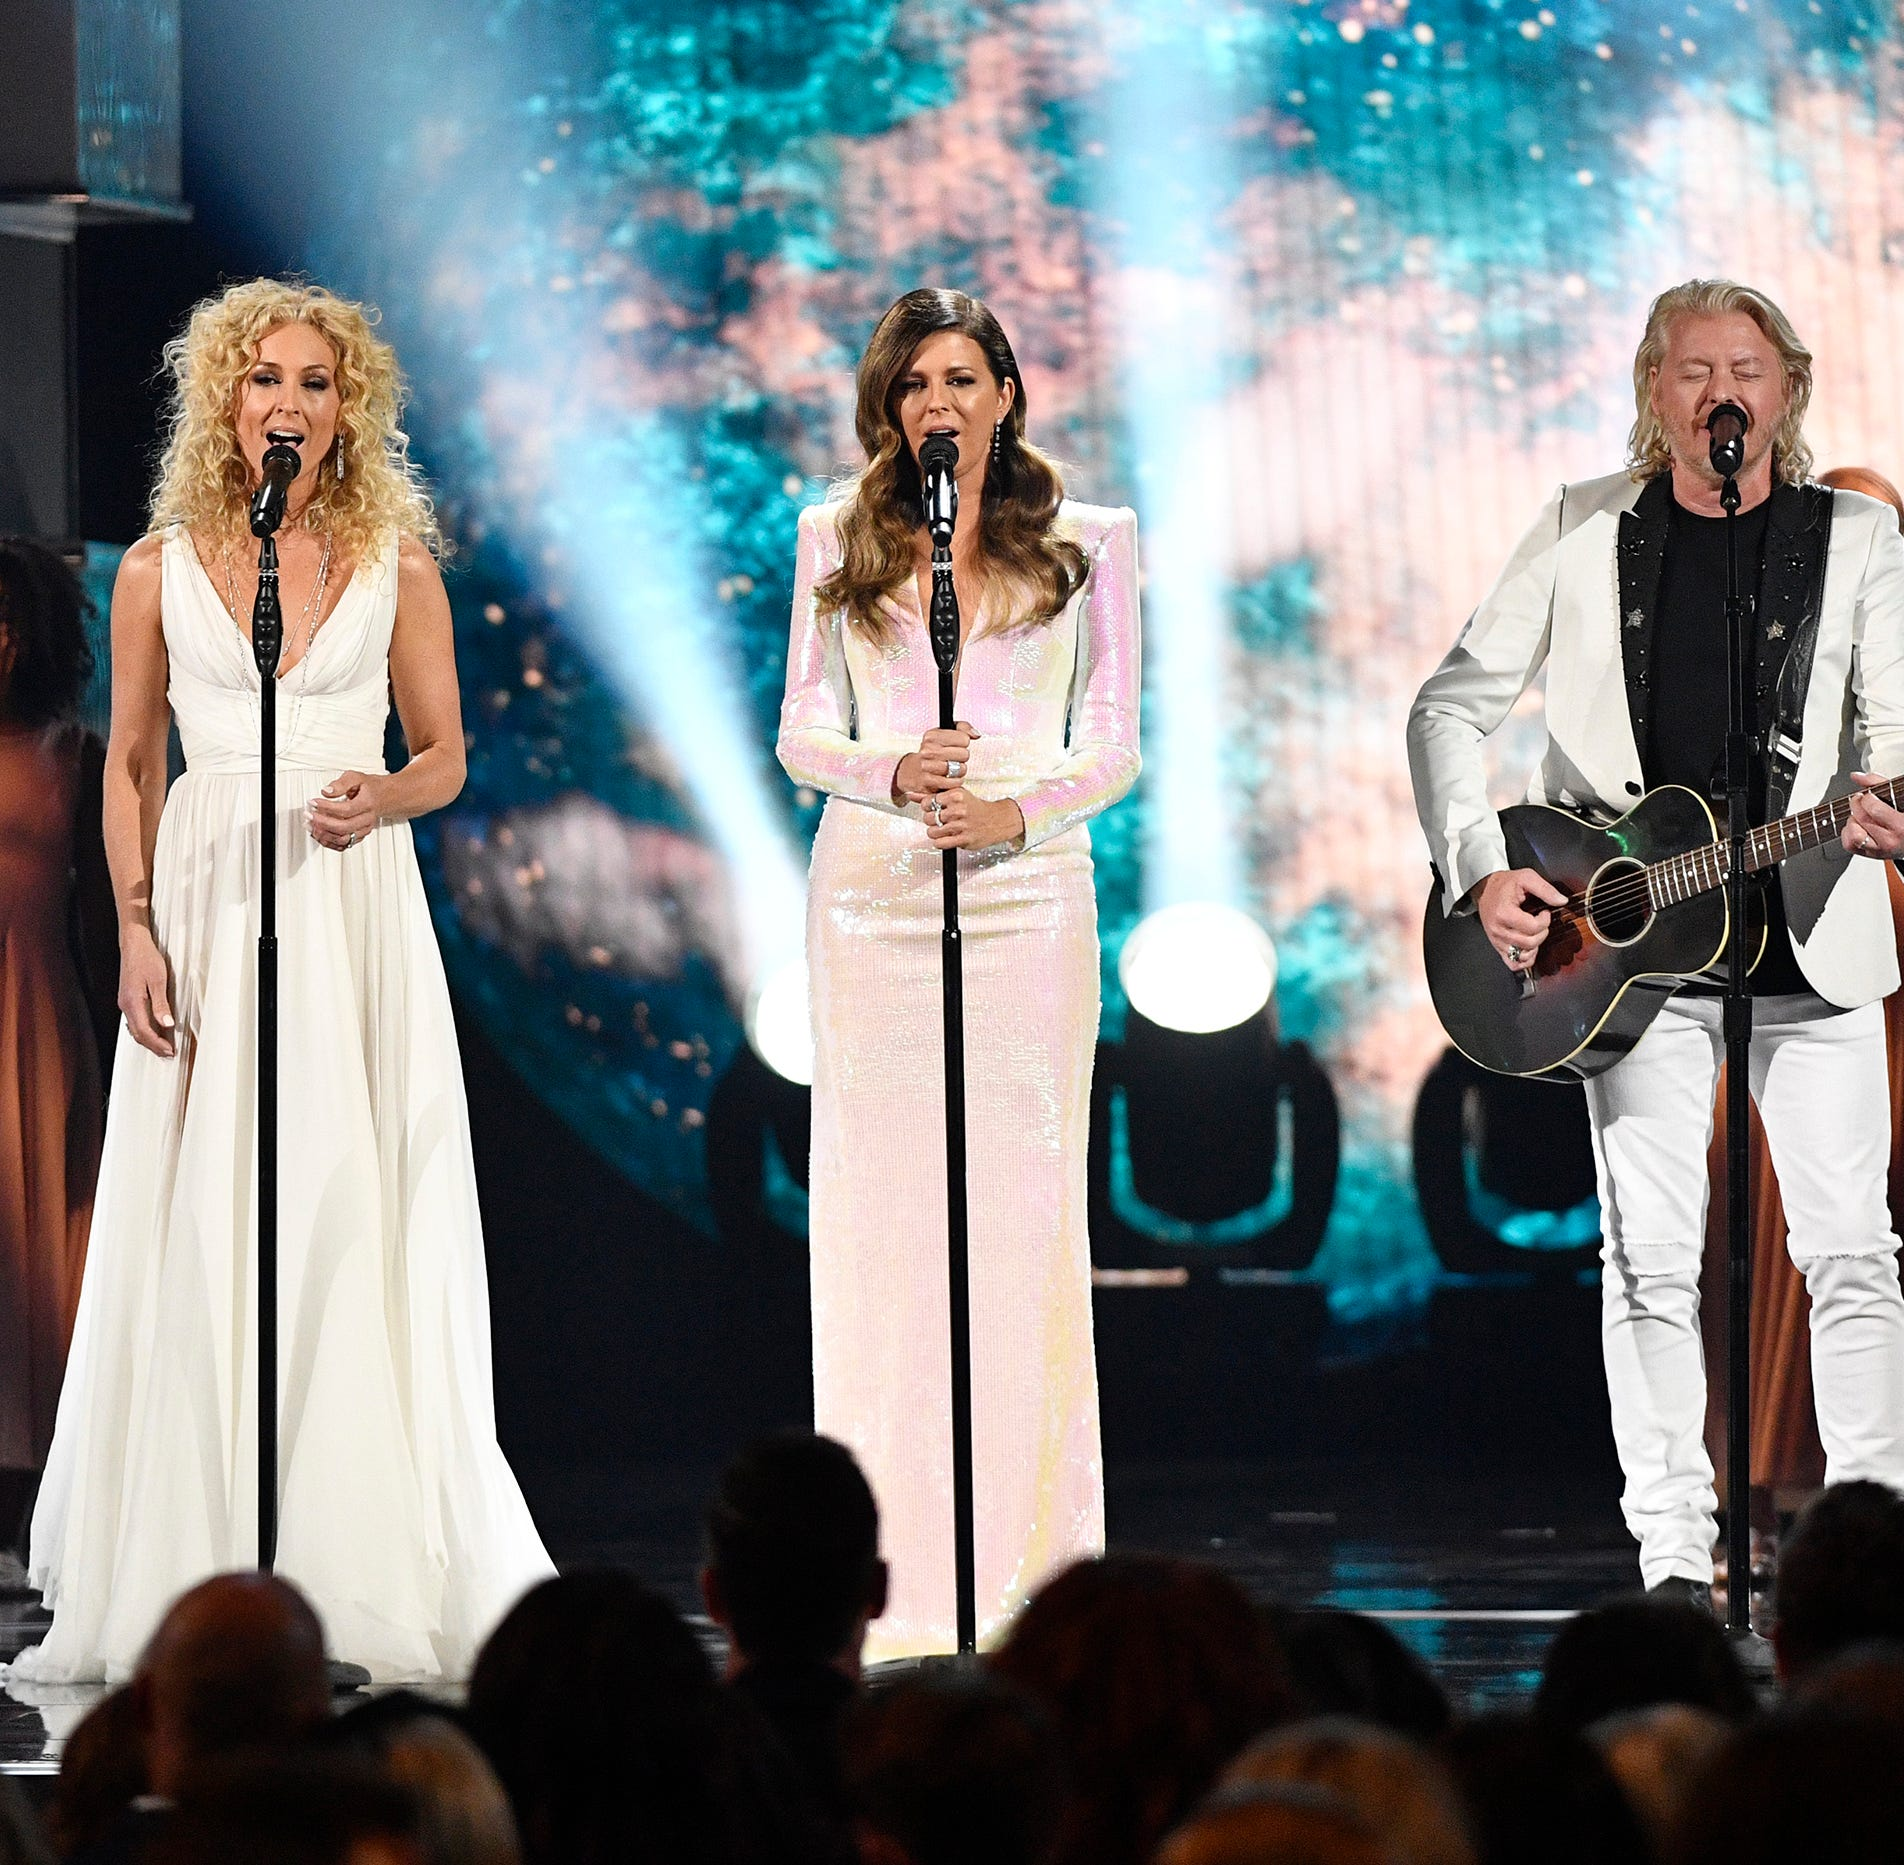 ACM Awards: Little Big Town's song 'The Daughters' strikes a chord